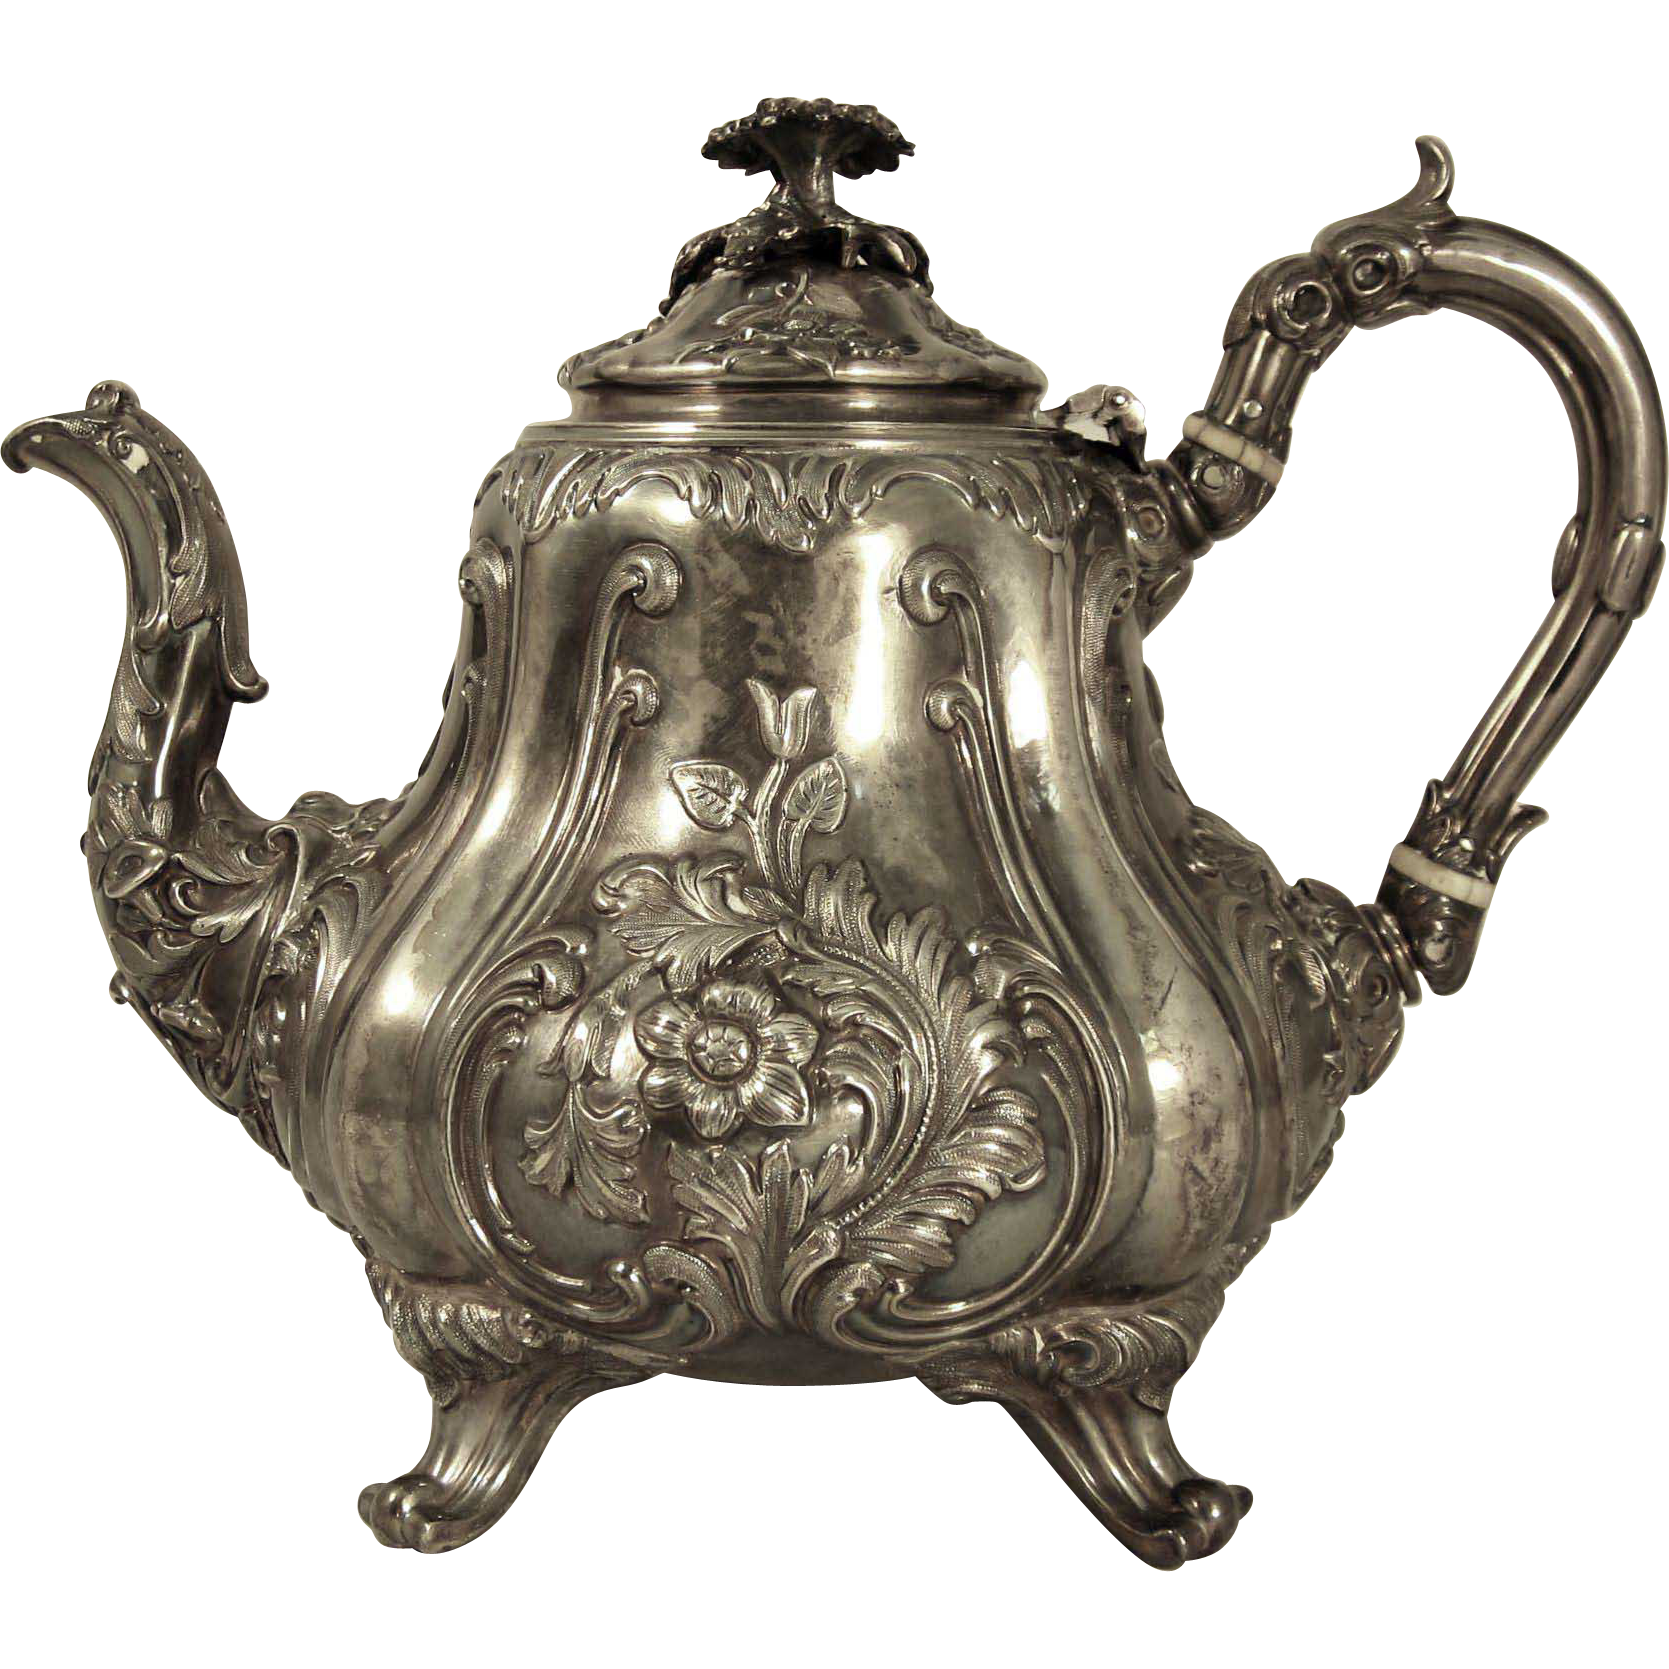 Antique Victorian Sterling Silver Teapot London 1857 Horace Woodward